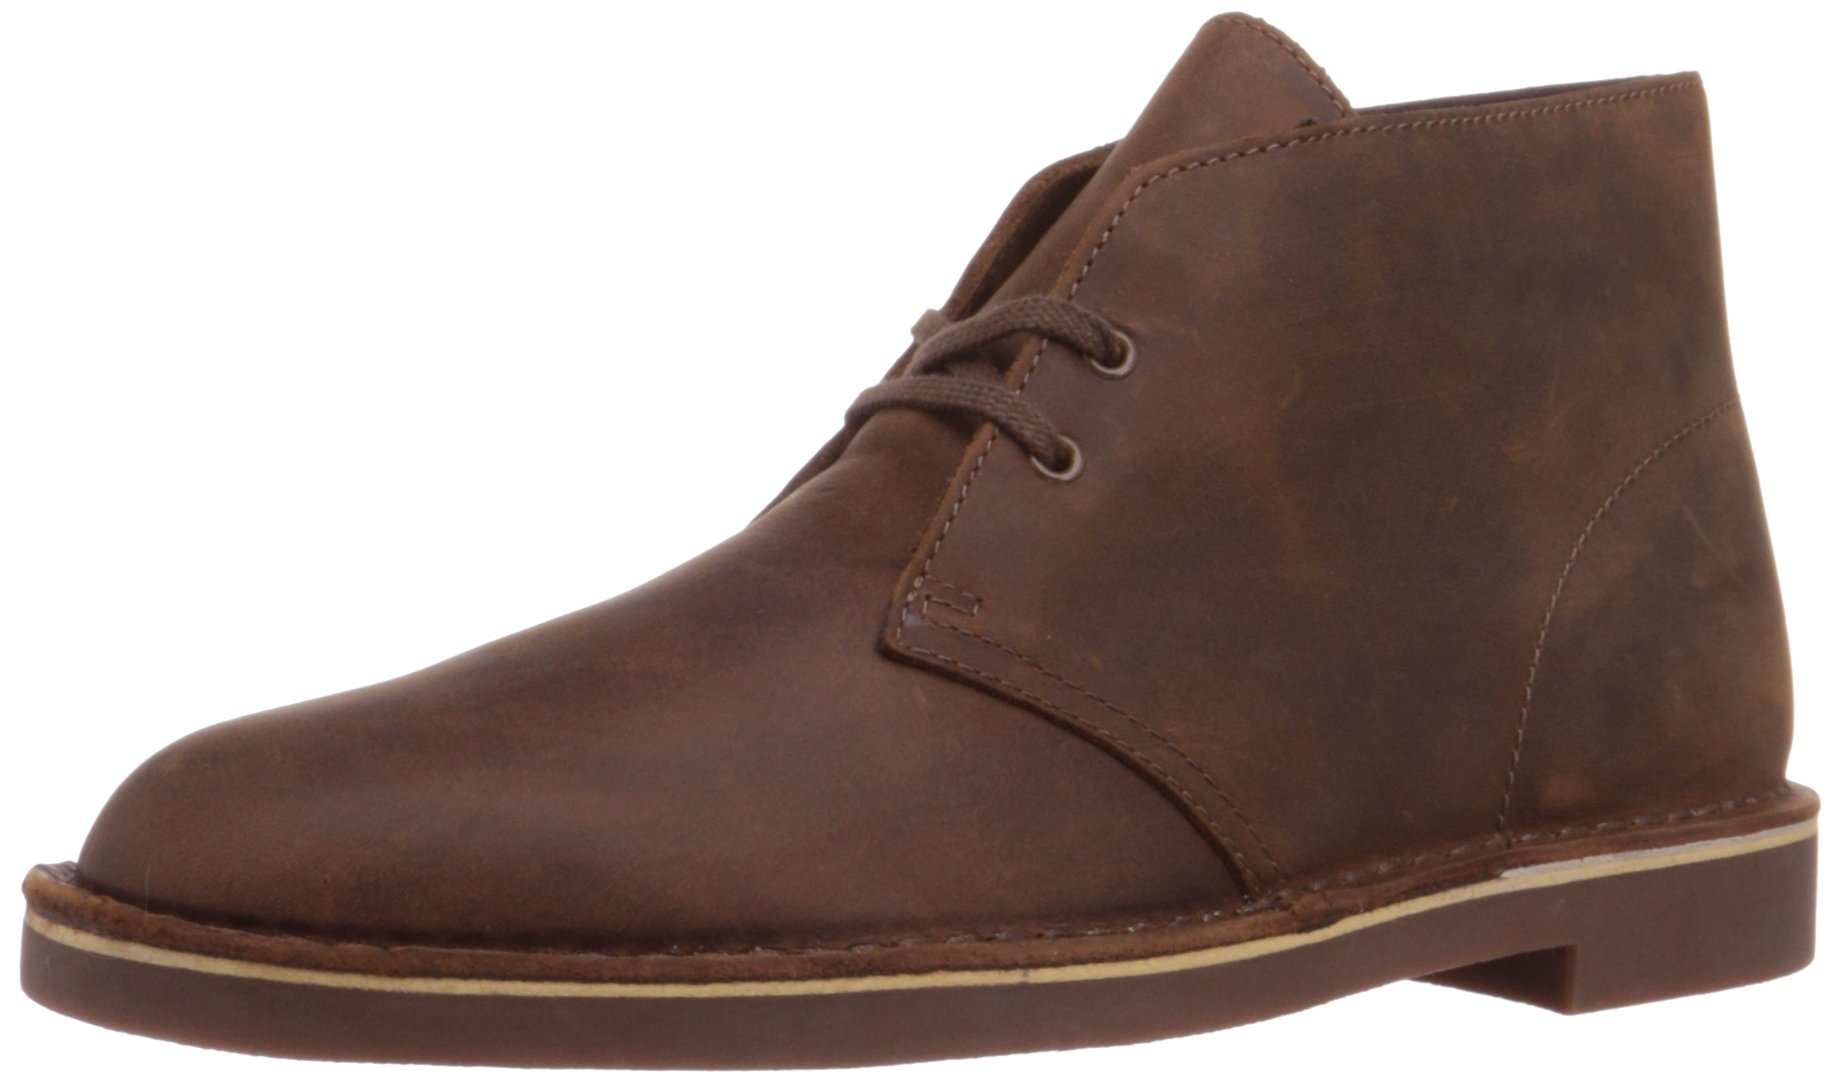 CLARKS Men's Bushacre 2 Chukka Boot,Beeswax,10 M US by CLARKS